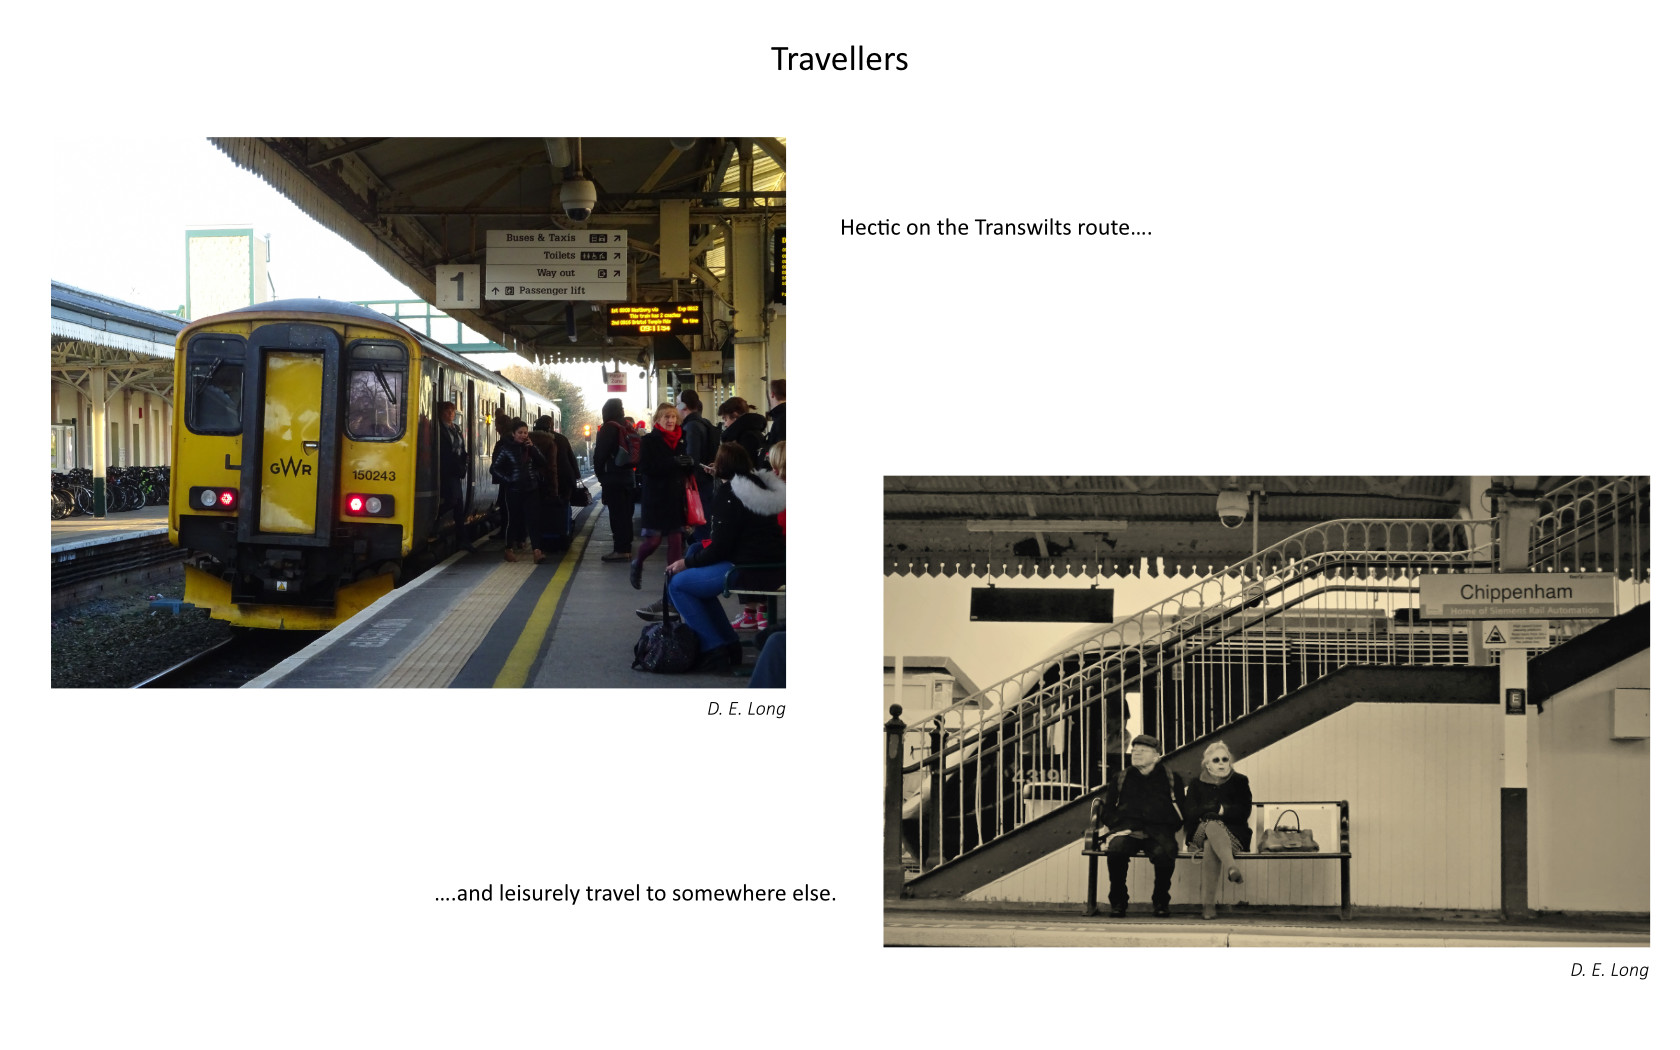 two photographs of travellers getting on or waiting for trains at the station. Caption reads travellers hectic on the Transwilts route and leisurely travel to somewhere else